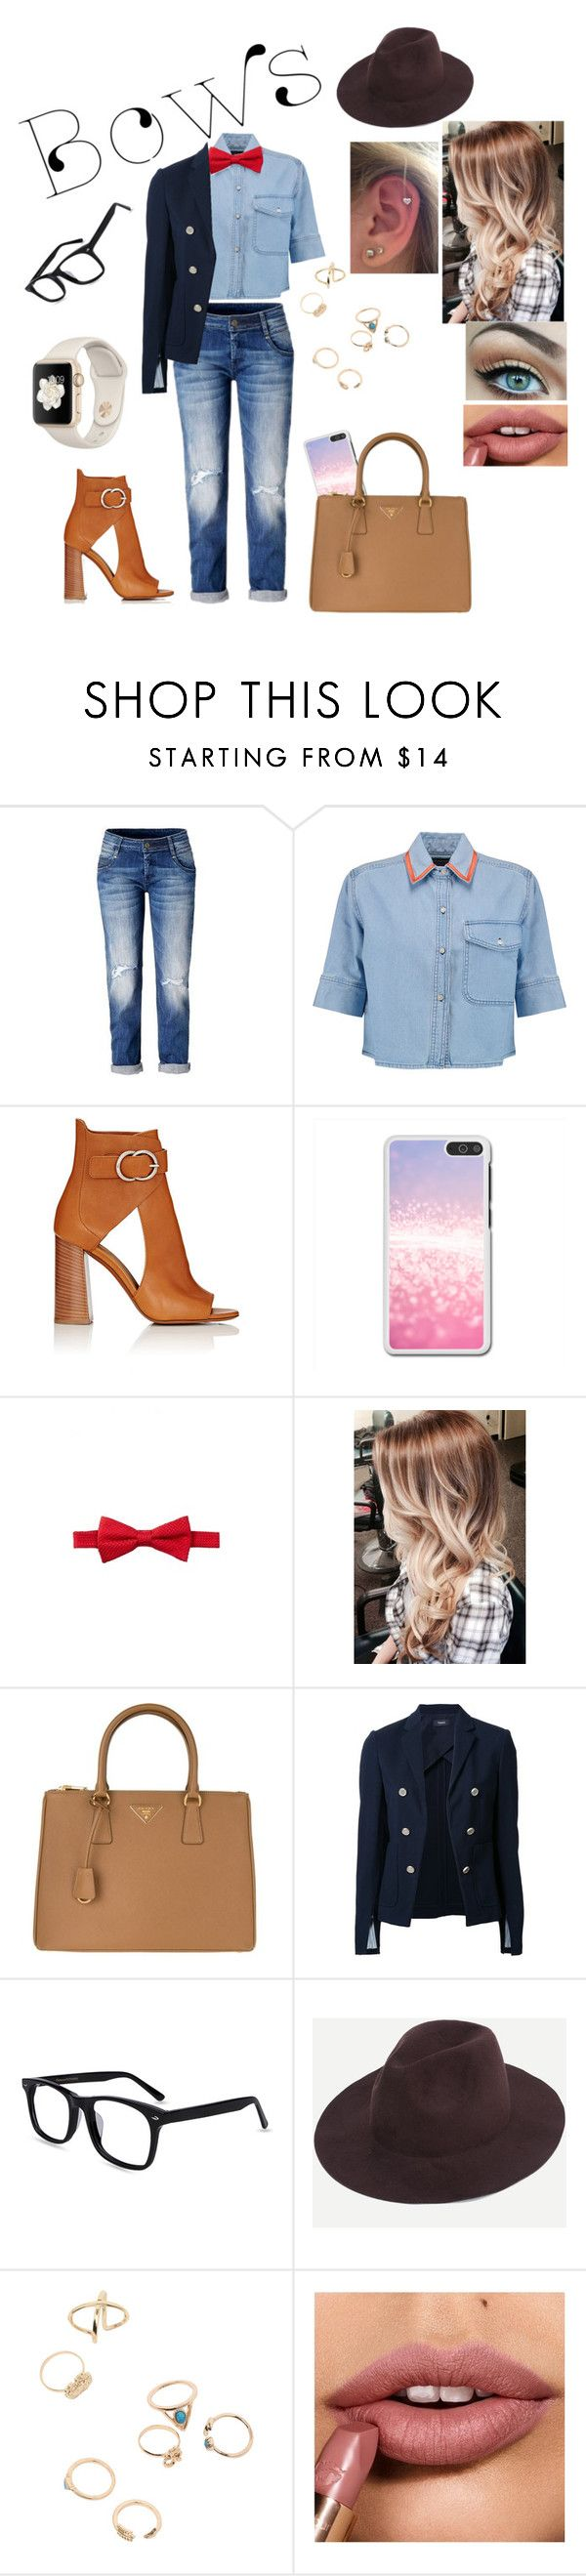 """""""Bow Ties"""" by kayy2558 ❤ liked on Polyvore featuring Être Cécile, Chloé, Nordstrom Rack, Prada and Theory"""